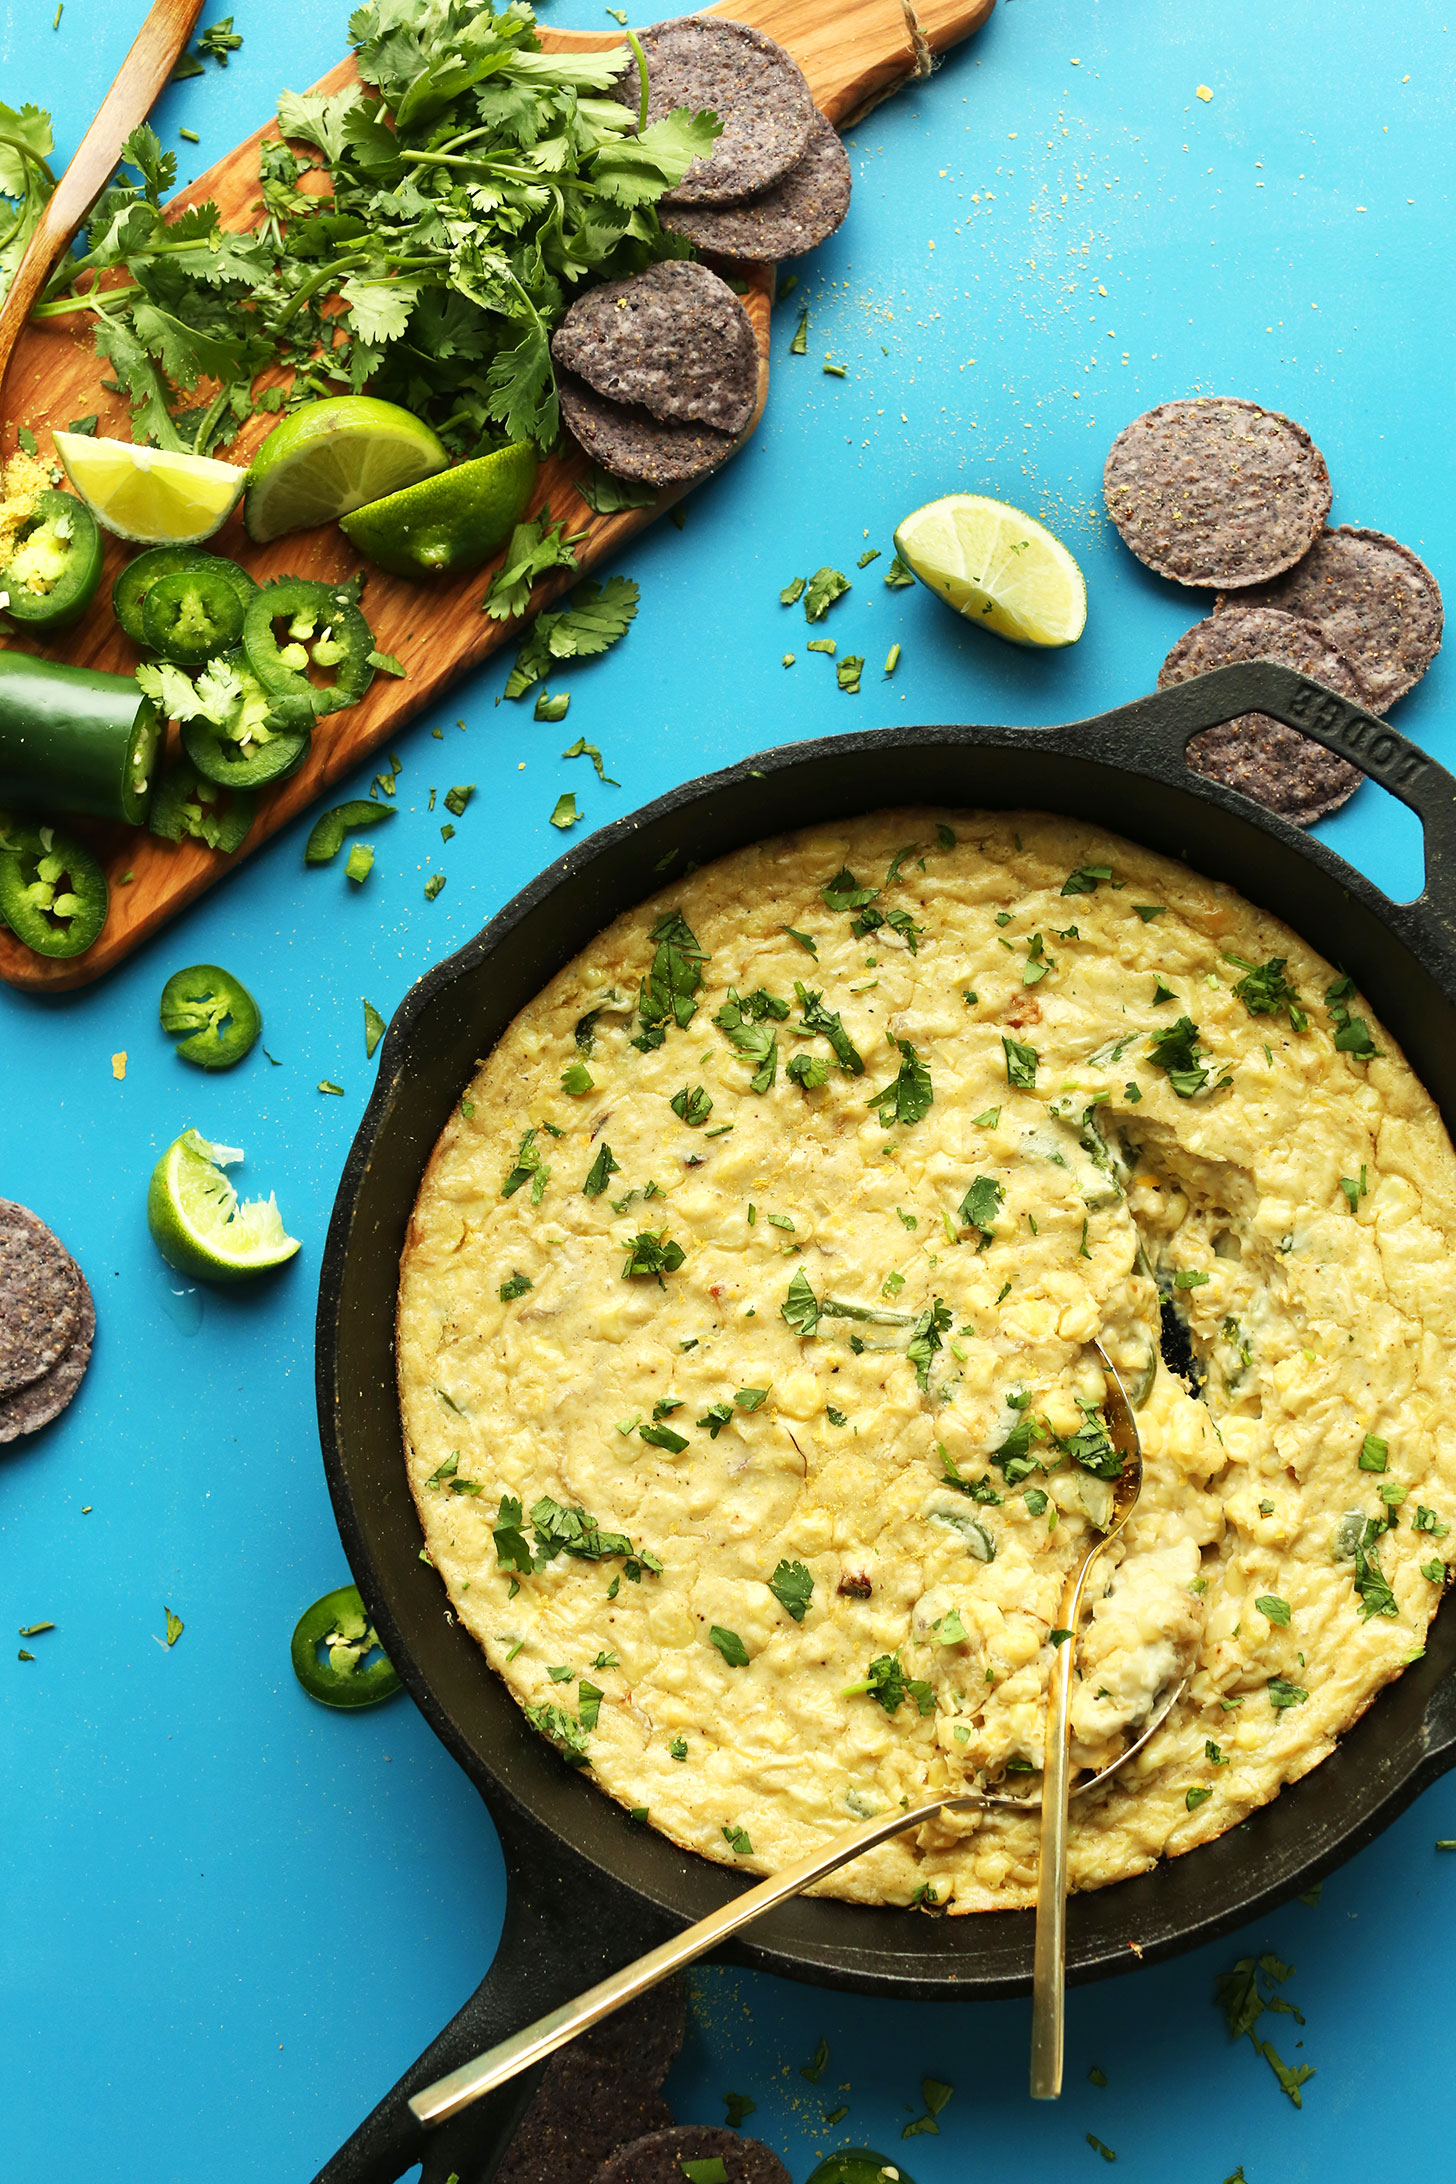 Cast-iron skillet filled with Cheesy Corn Dip for a gluten-free plant-based appetizer